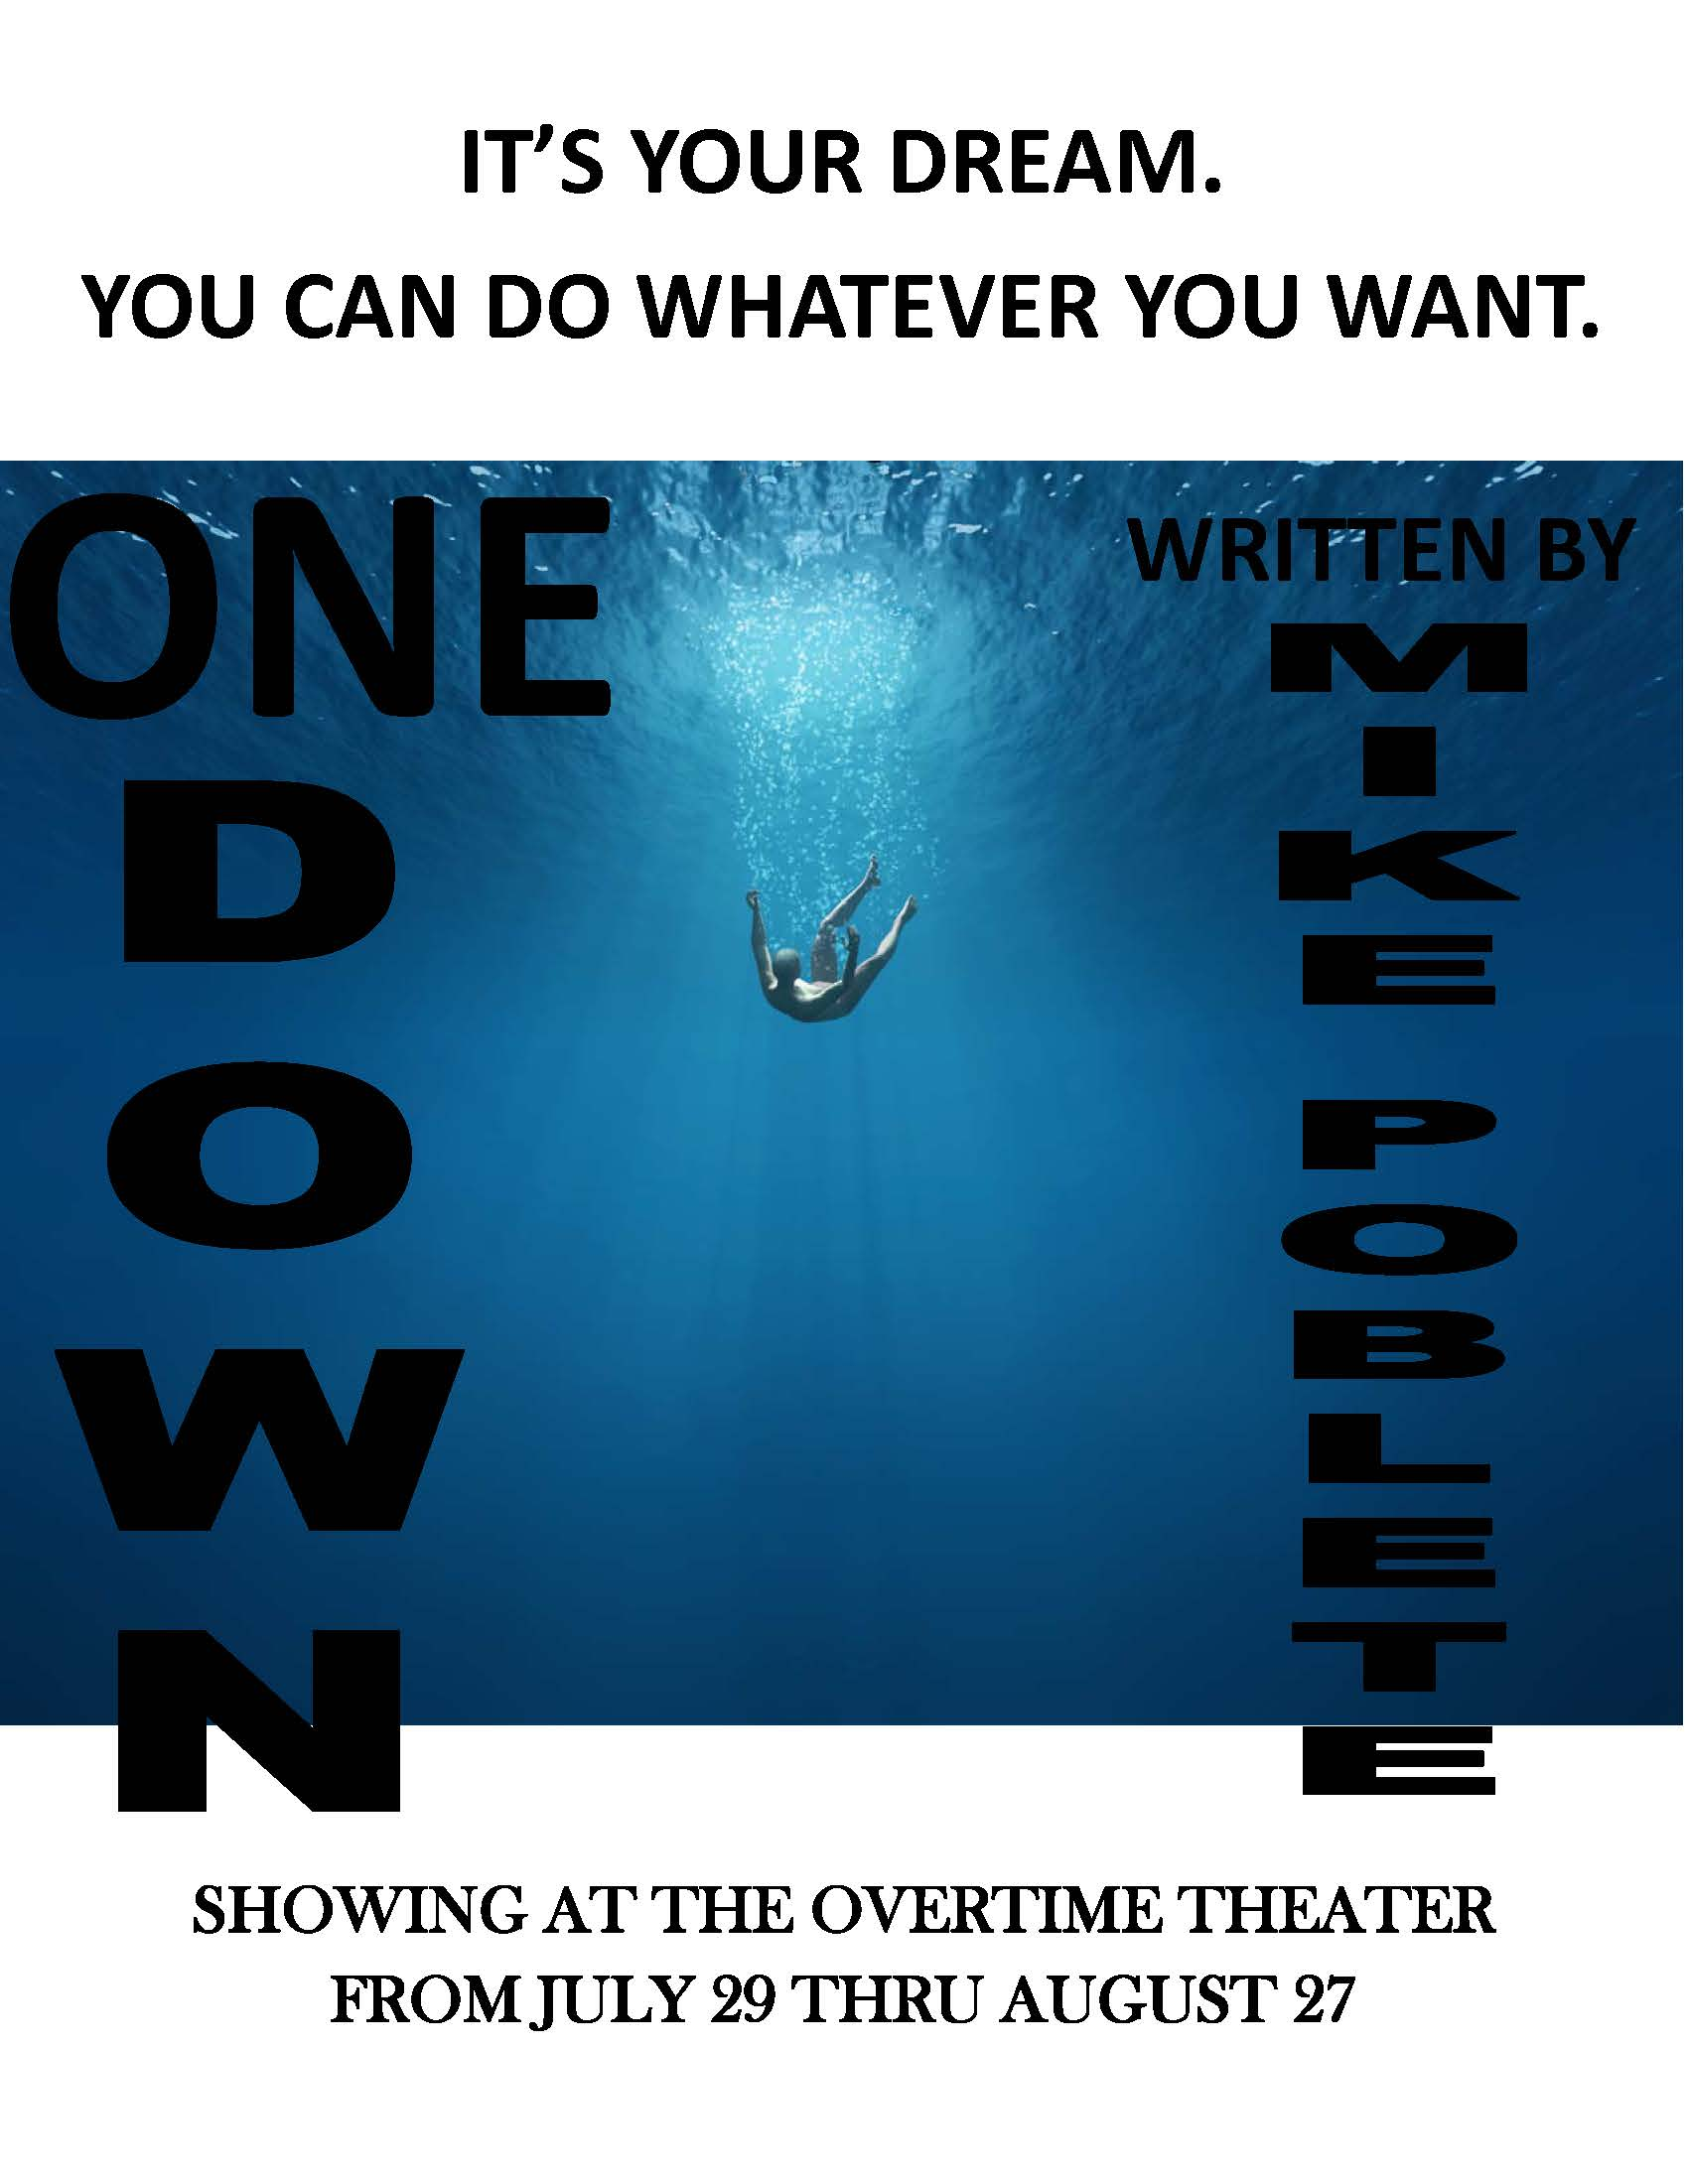 One Down by Overtime Theater